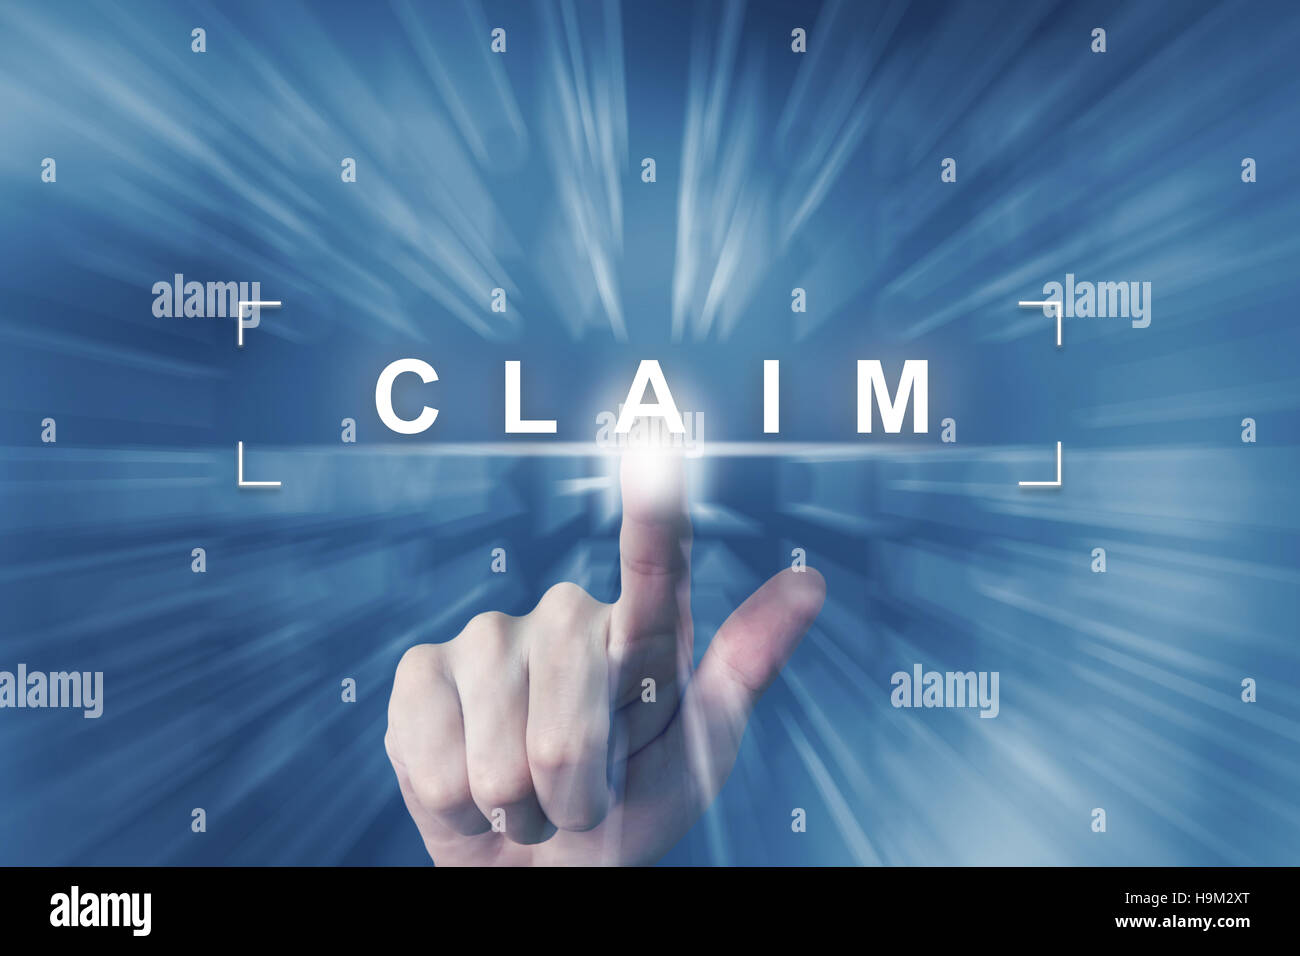 hand clicking on claim button with zoom effect background - Stock Image